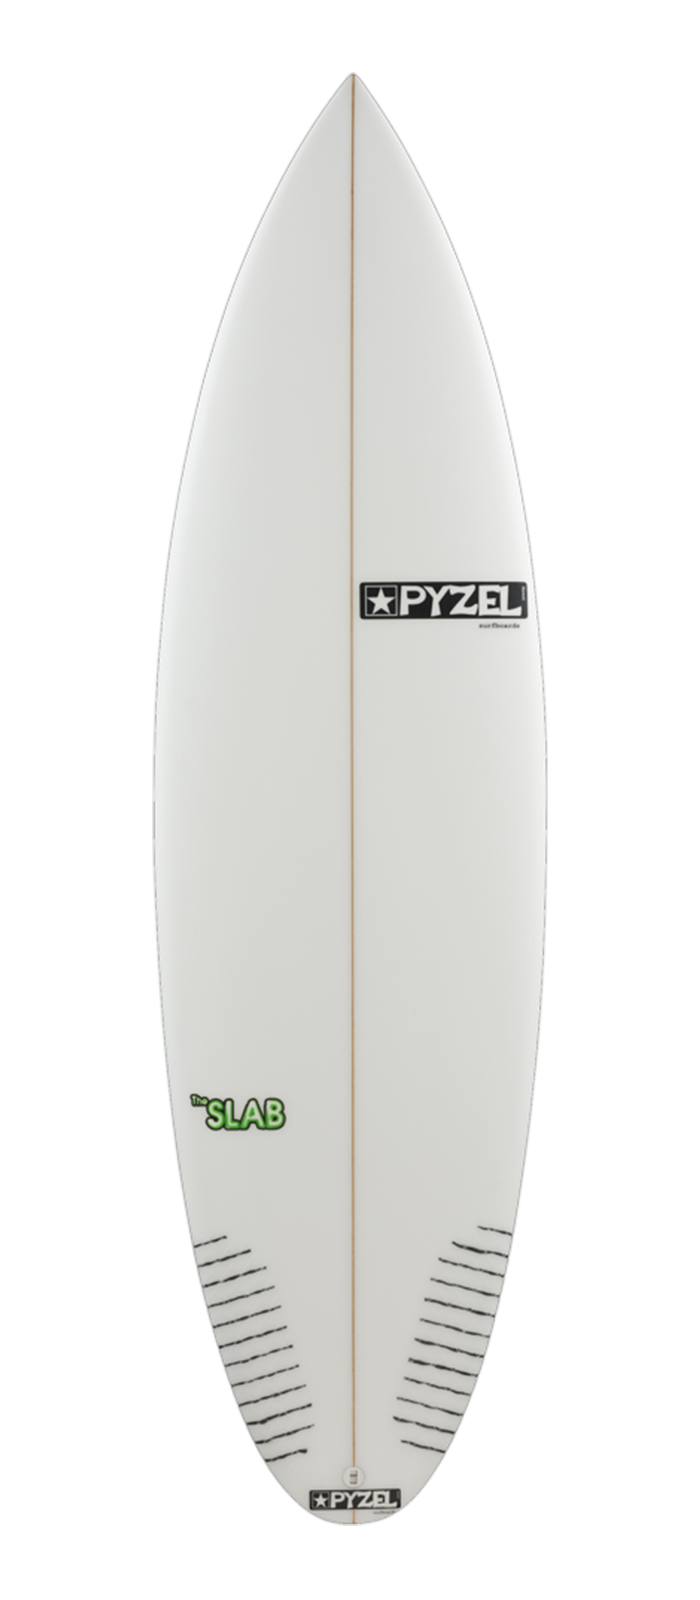 THE SLAB surfboard model